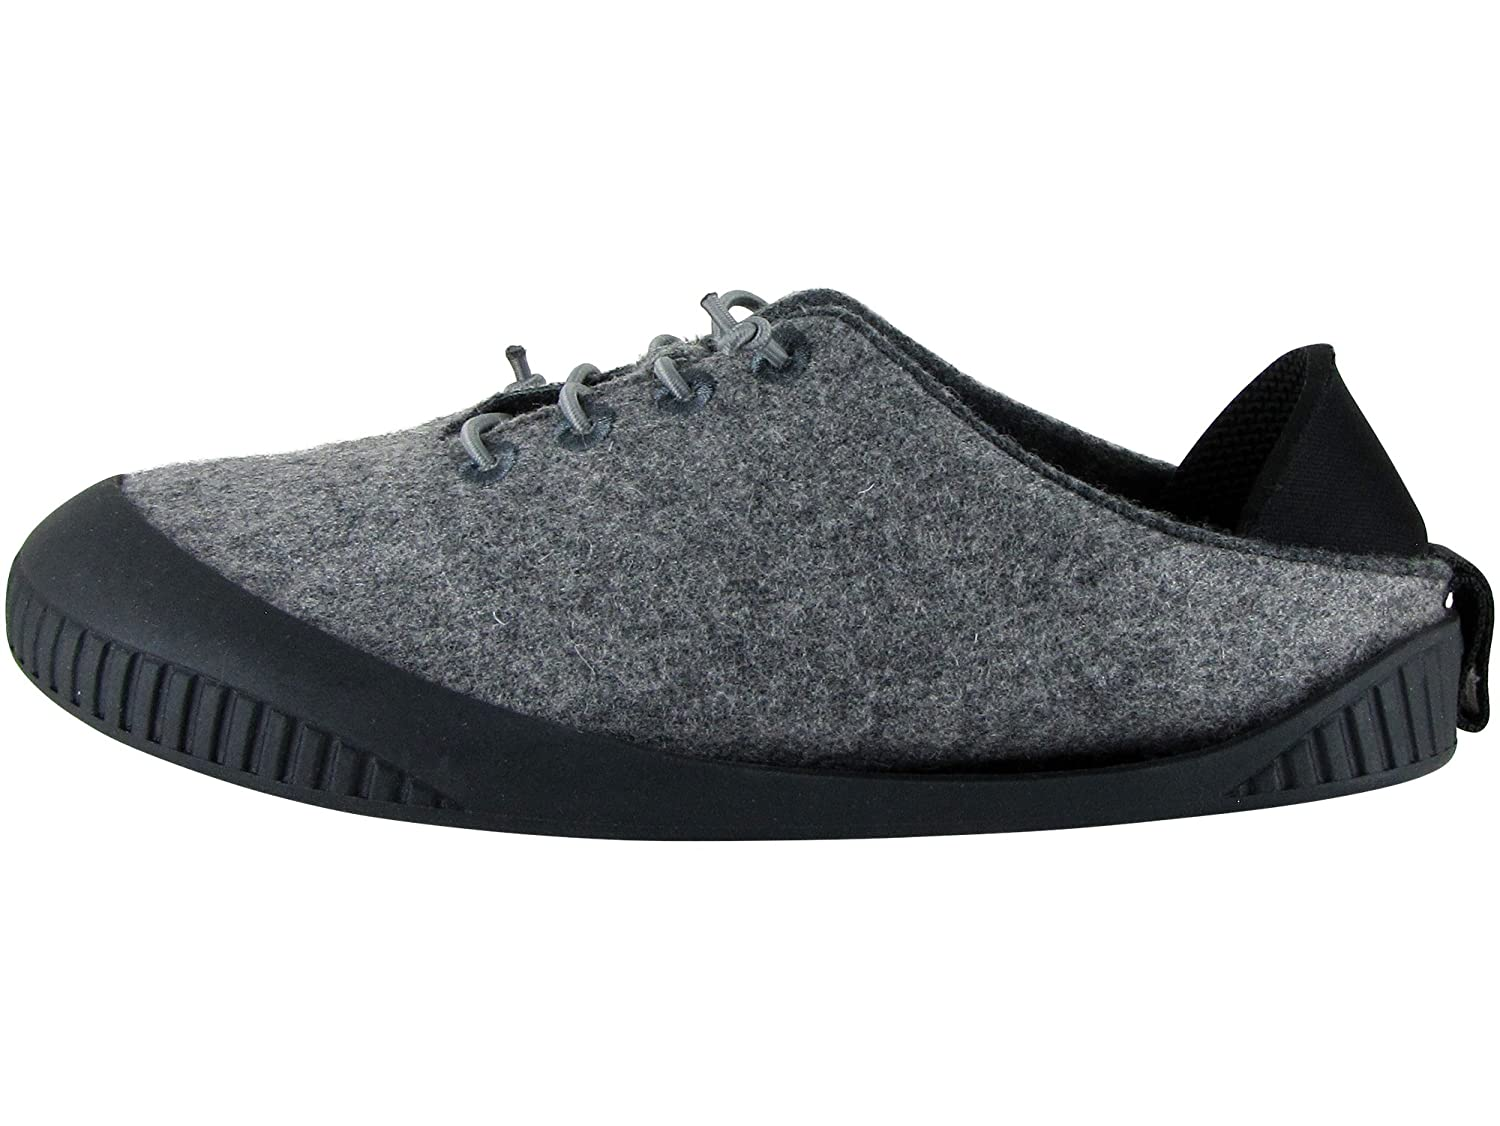 Dualyz ユニセックスアダルト B077GBSNVY 8 B(M) US Women|Light Grey/Black Light Grey/Black 8 B(M) US Women